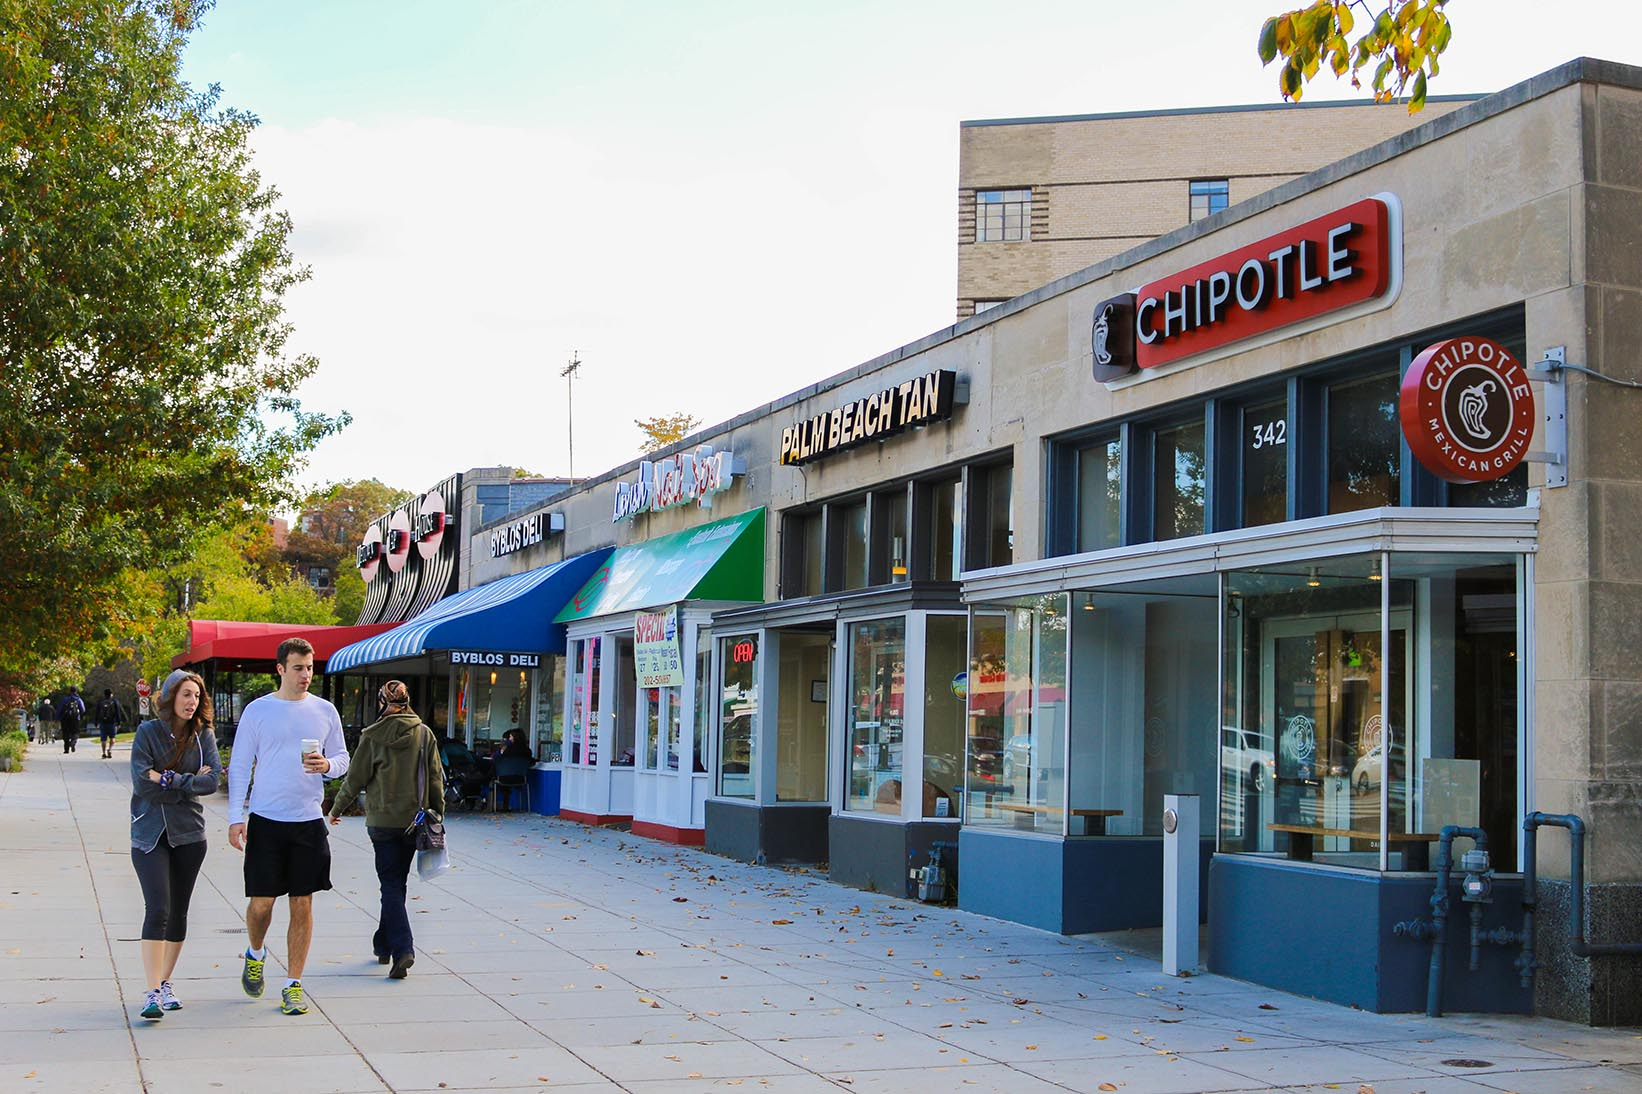 Chipotle and restaurants in Cleveland Park, Washington, DC